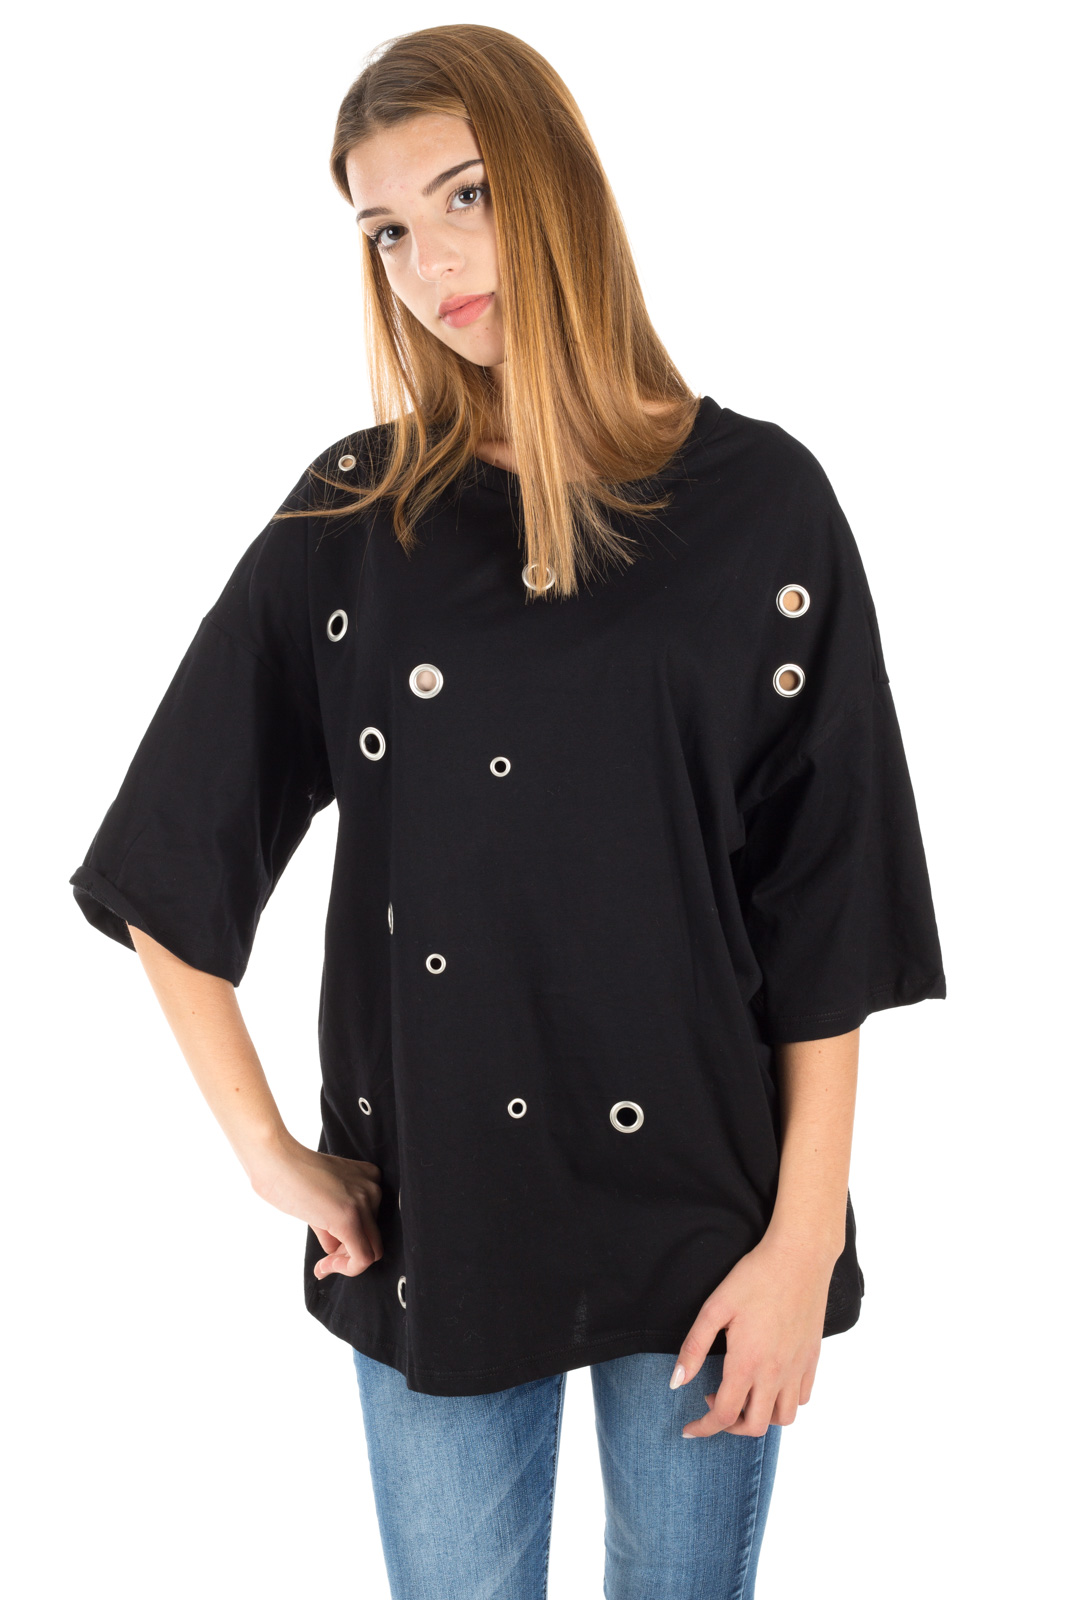 Glamorous - T-shirt over black with rings